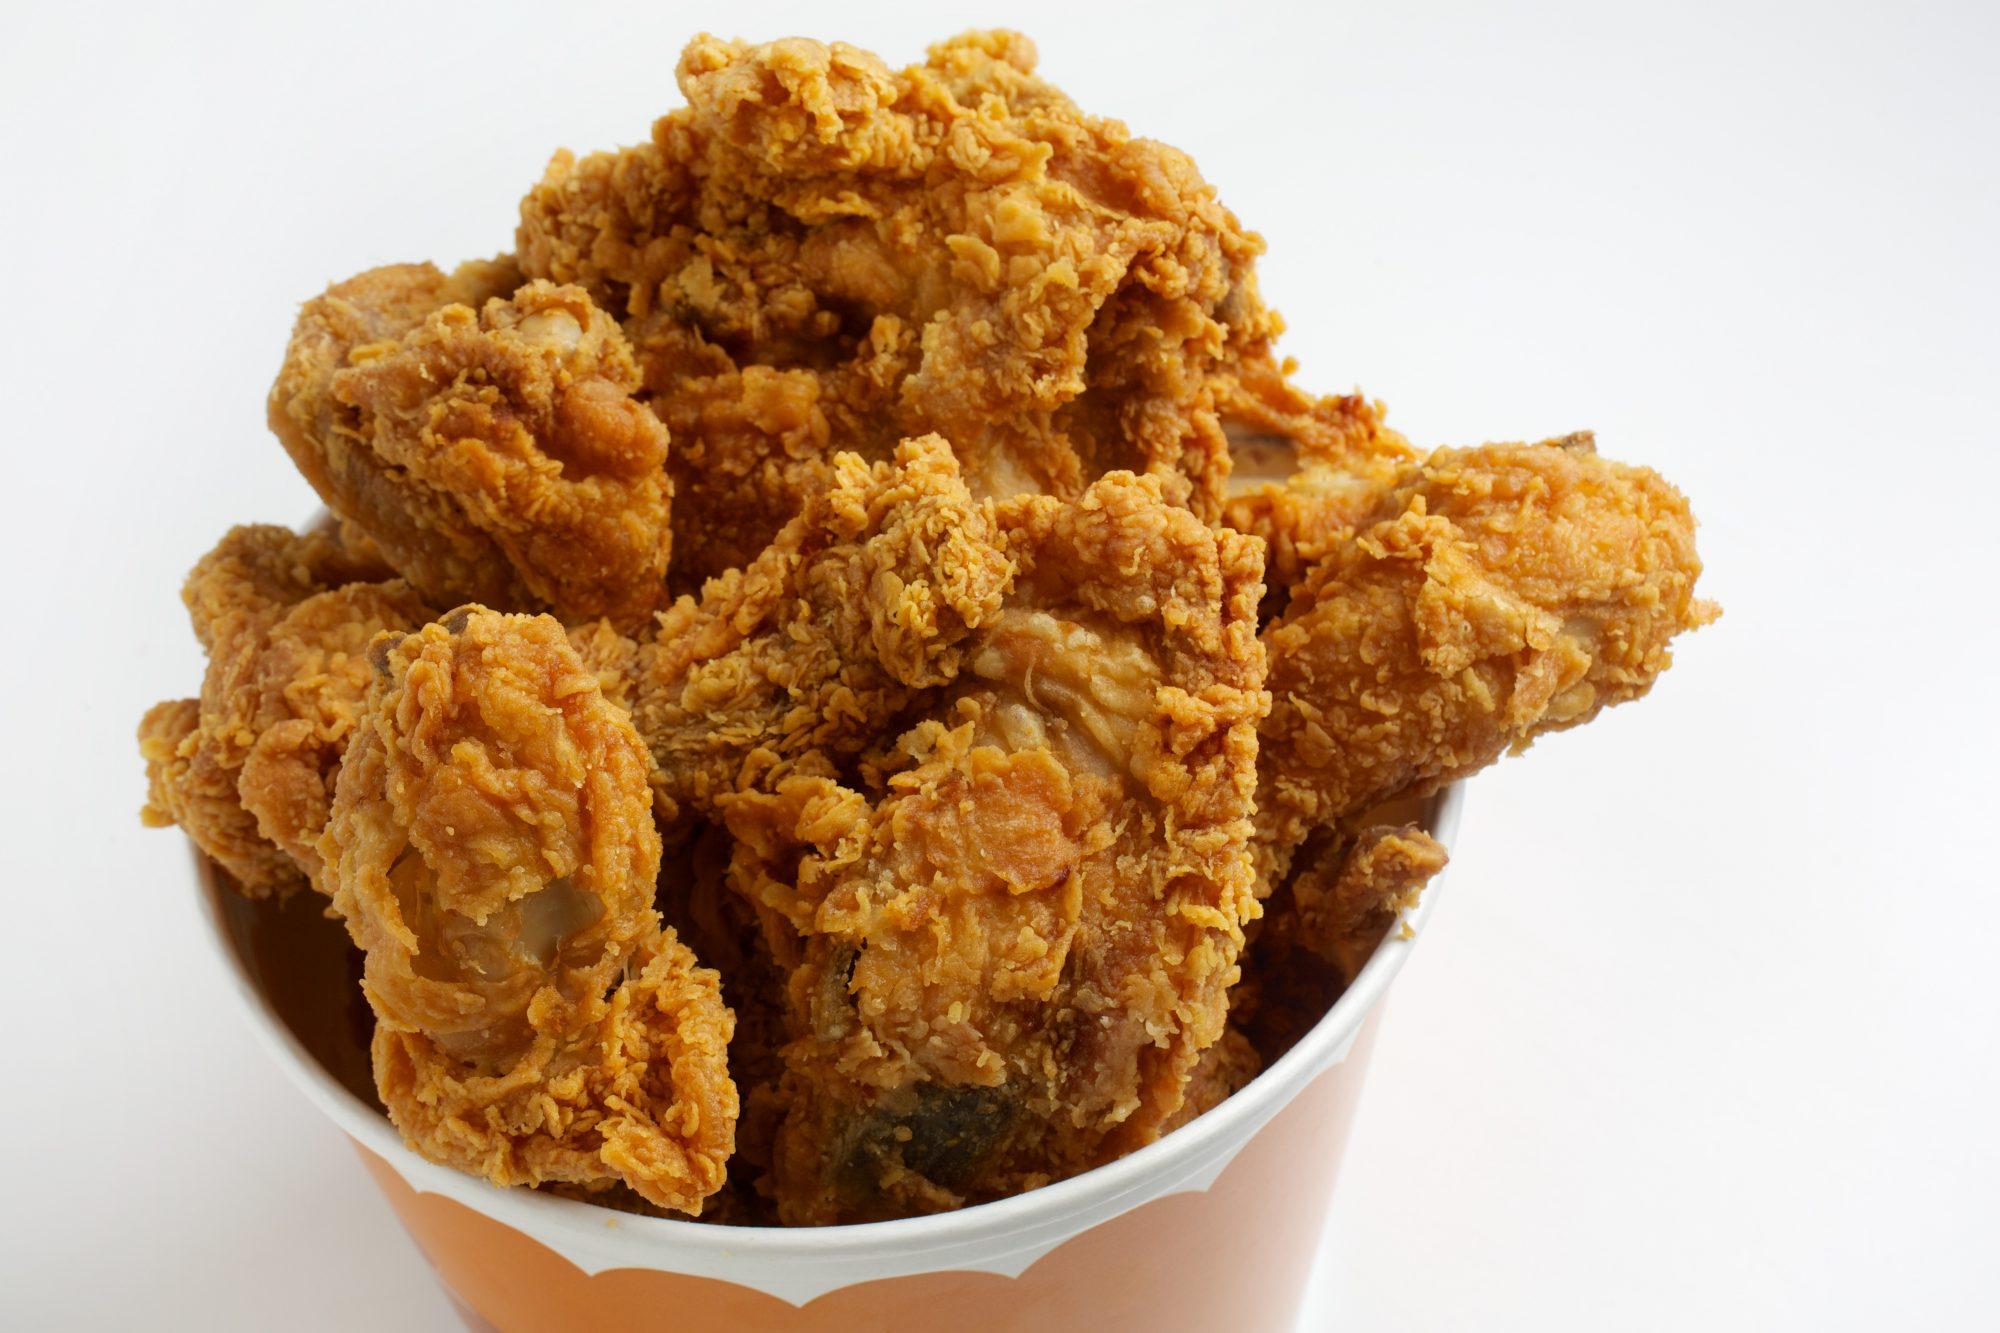 getty-fried-chicken-image